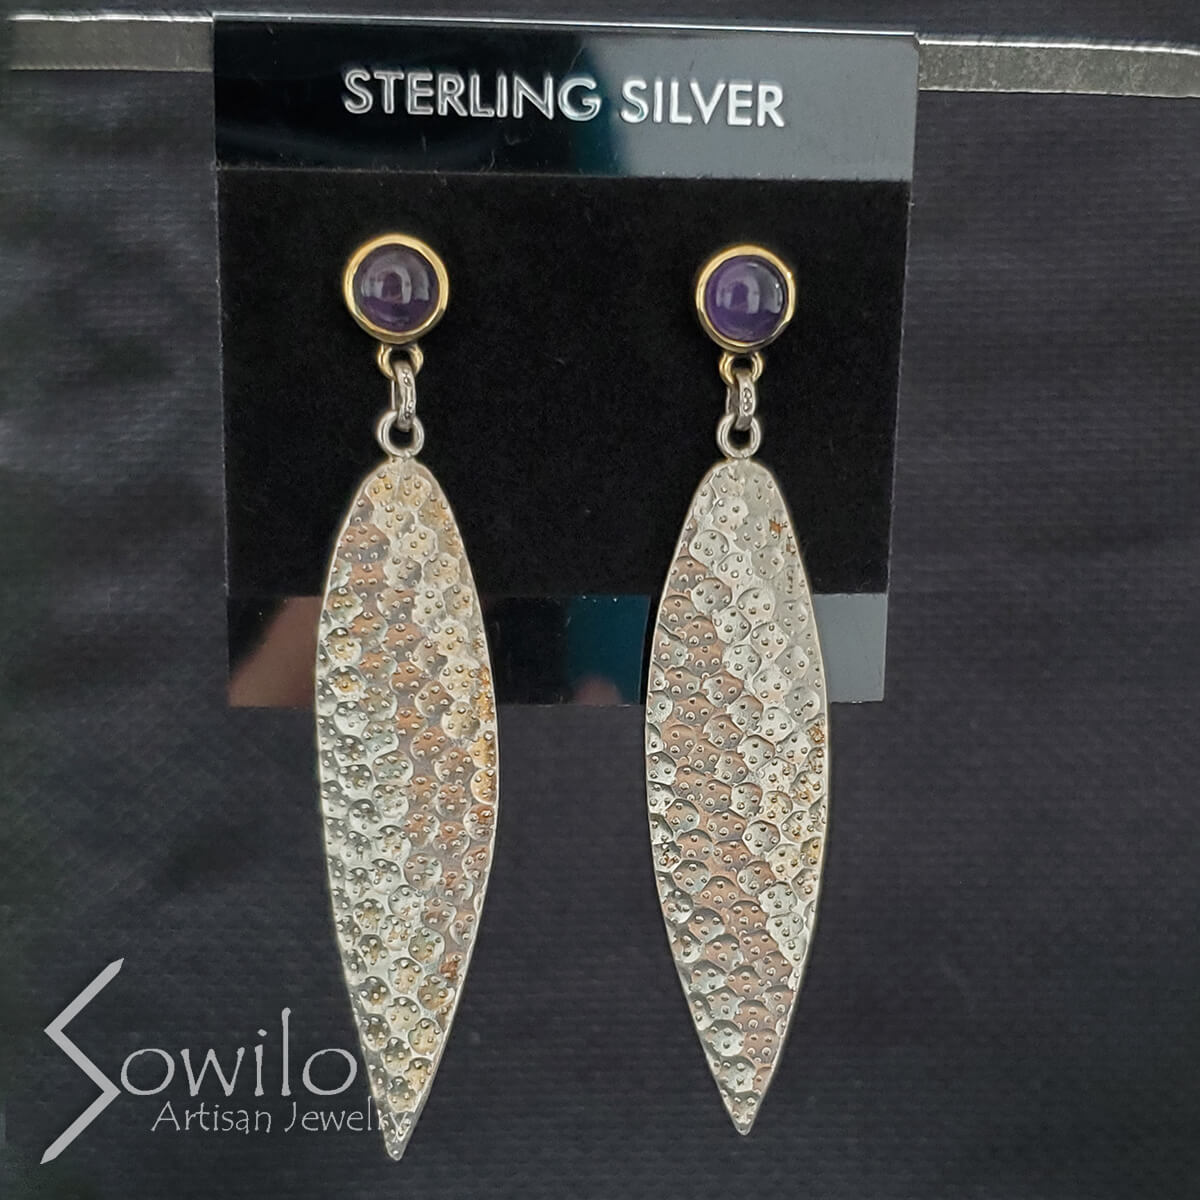 Gallery - Square - Sowilo Artisan Jewelry - Earrings - 2